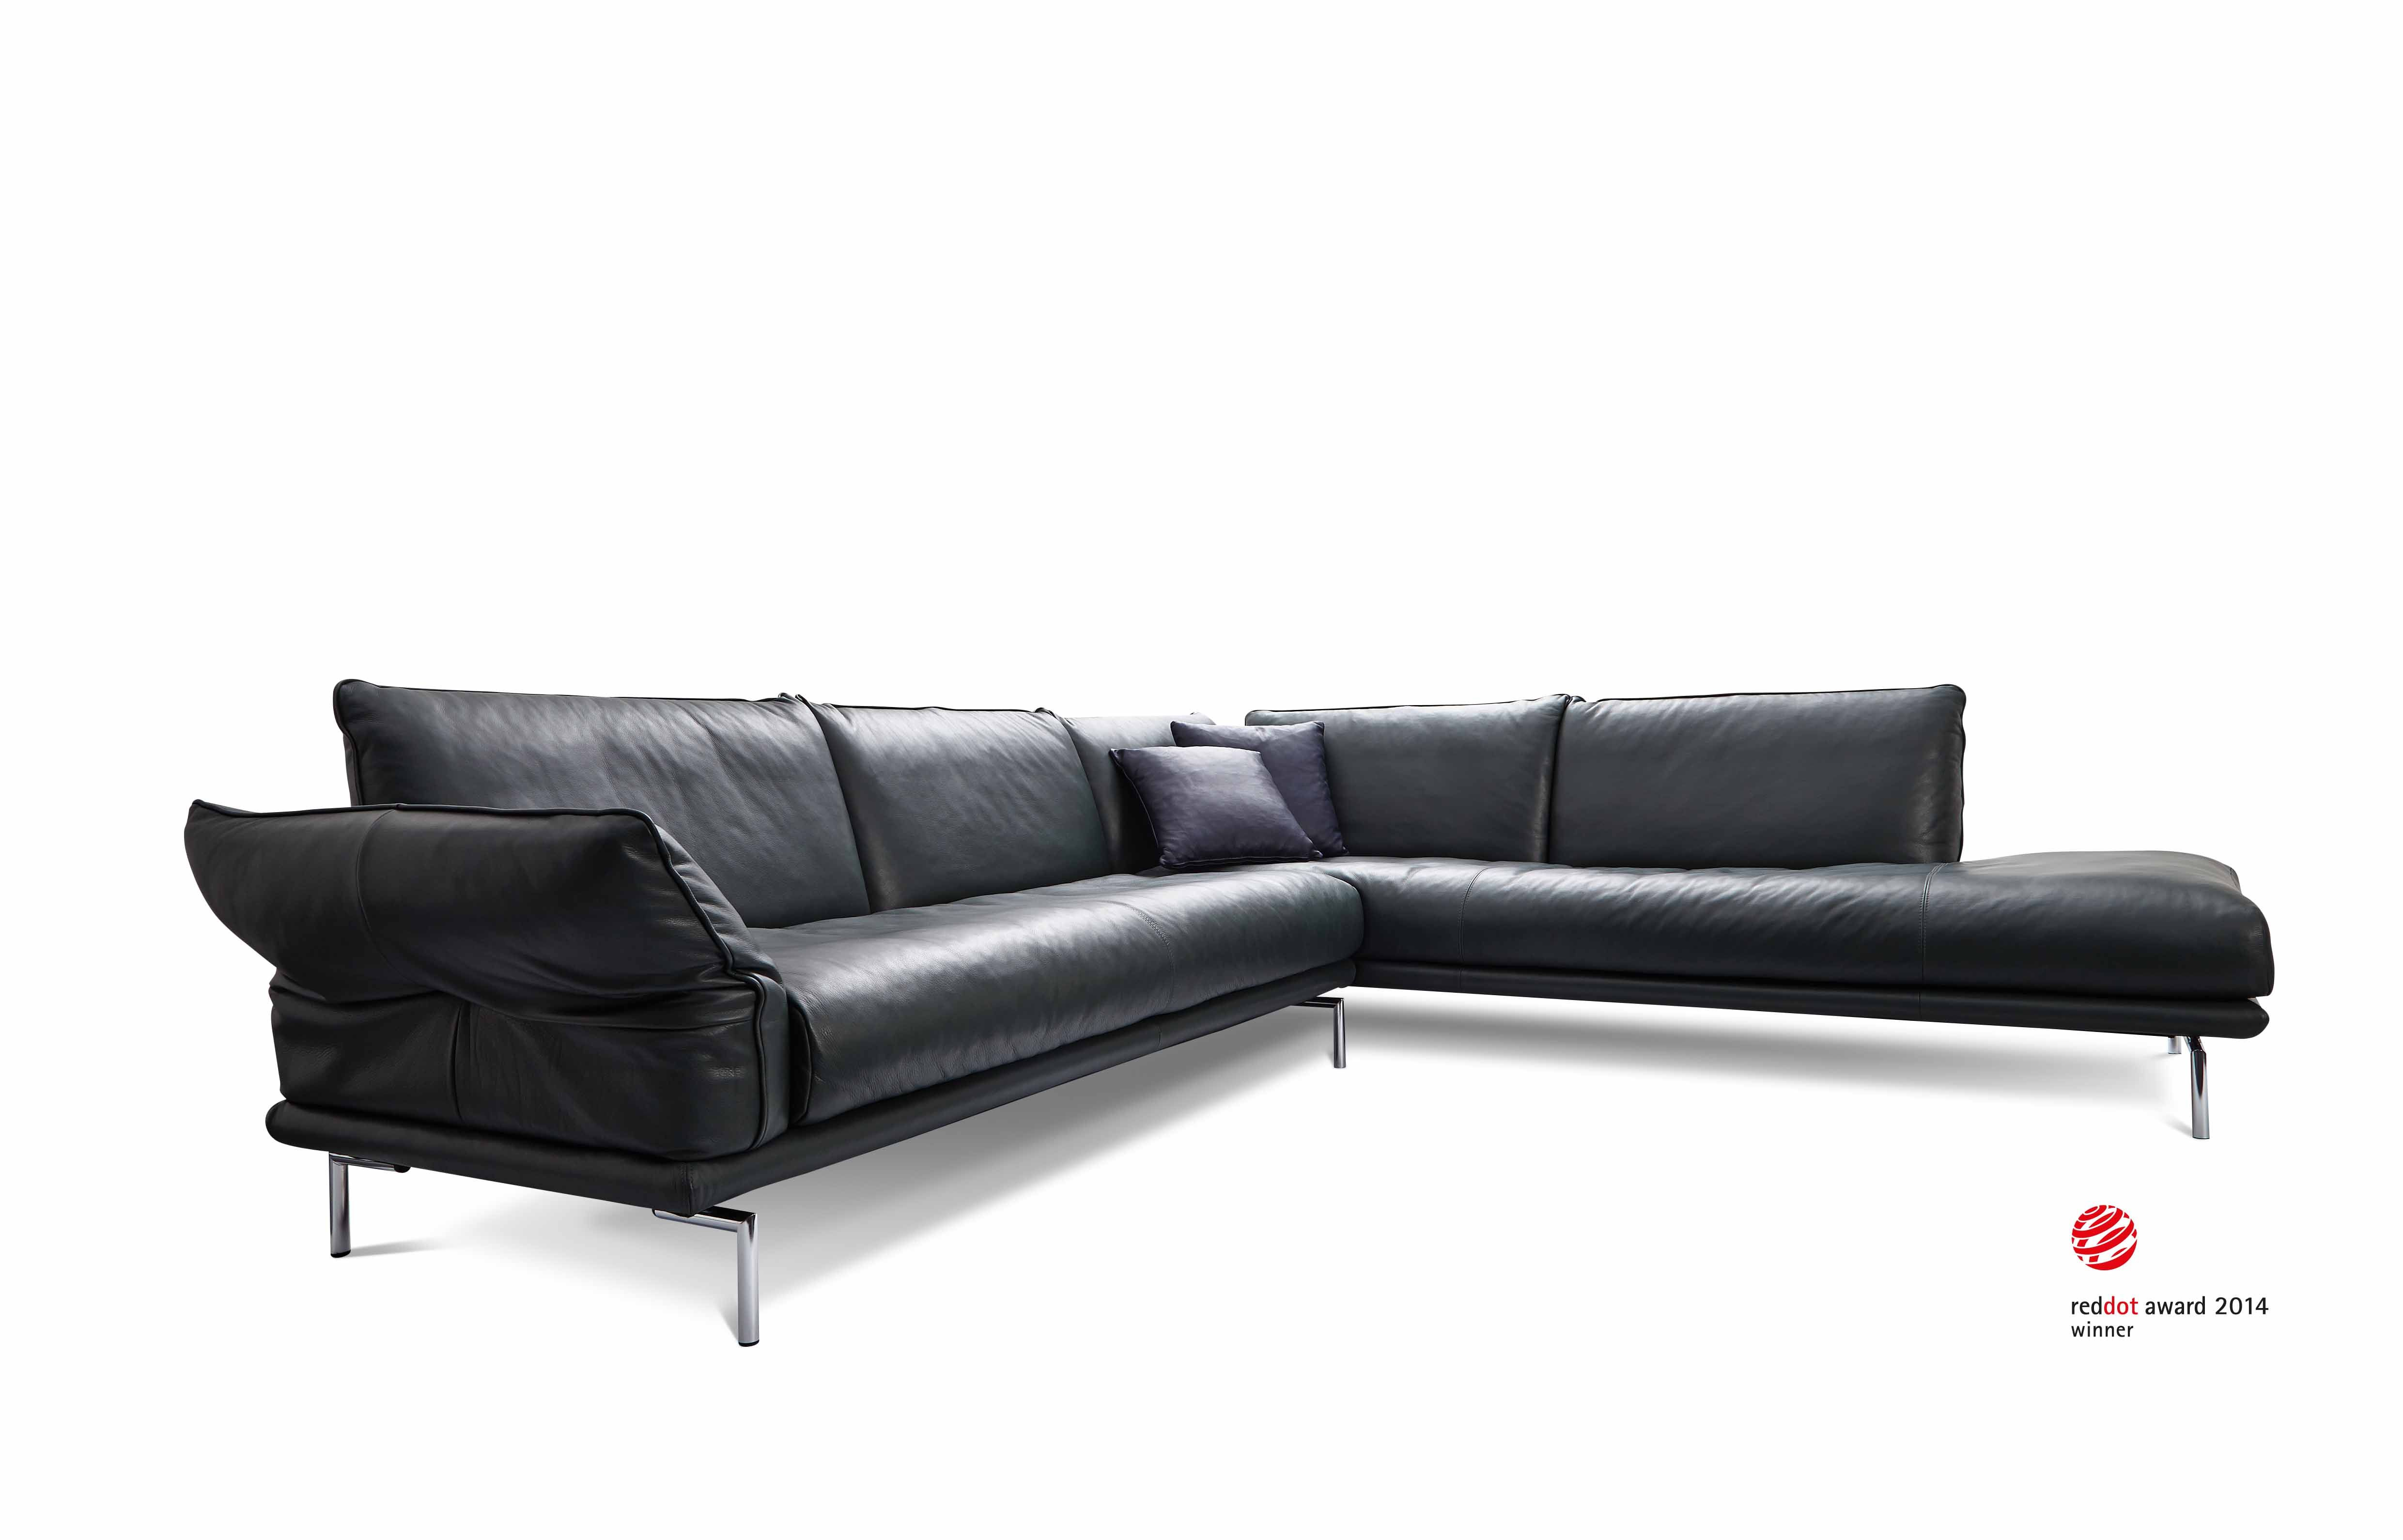 Sofa Beds Denver Co Fred Meyer Bed Machalke For The Home In 2019